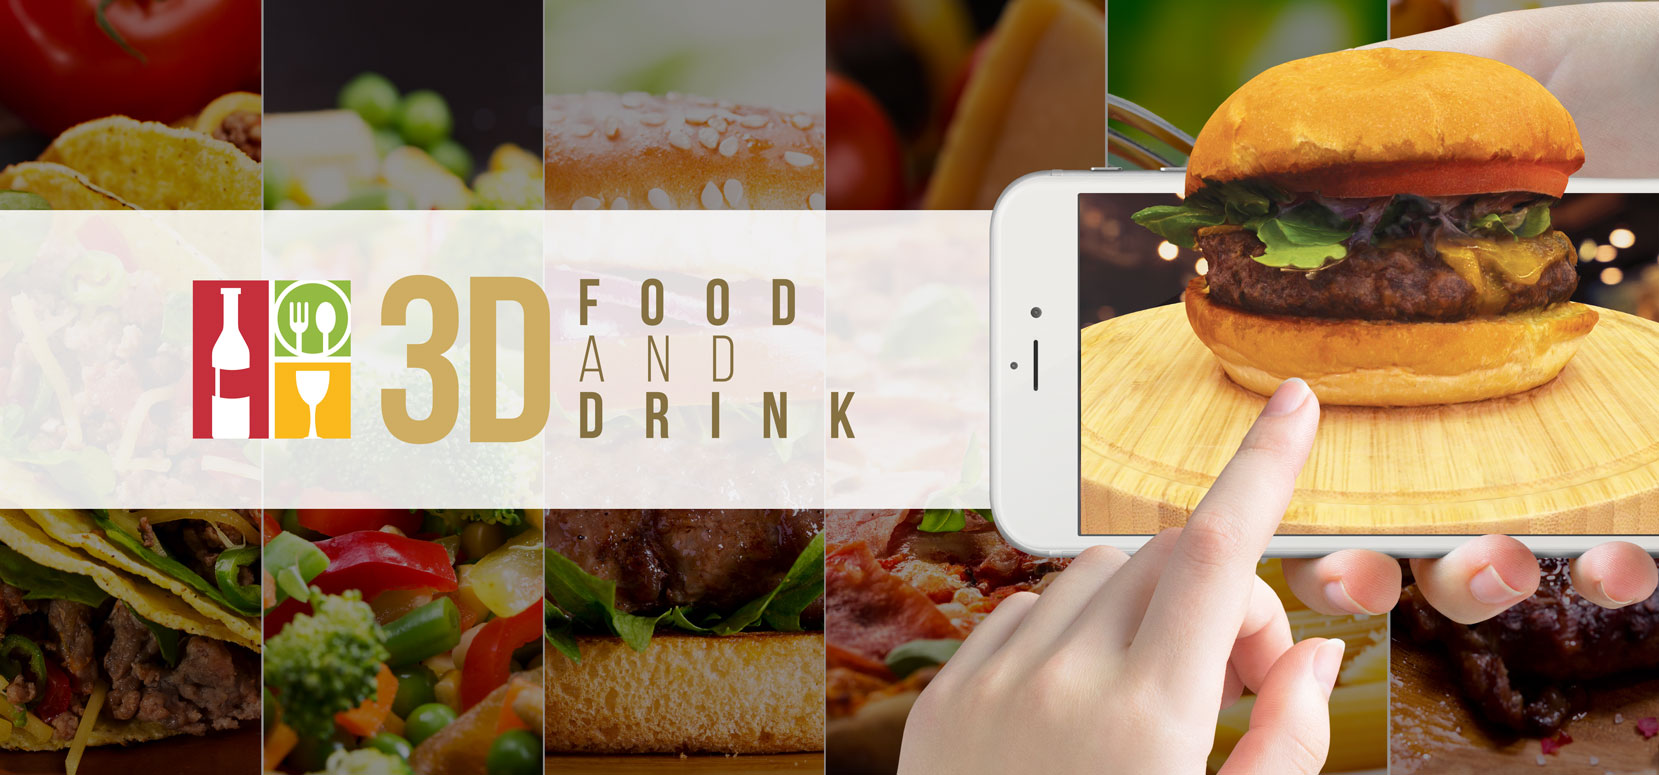 Visit 3D Food & Drink at the Restaurants Canada Show in Toronto